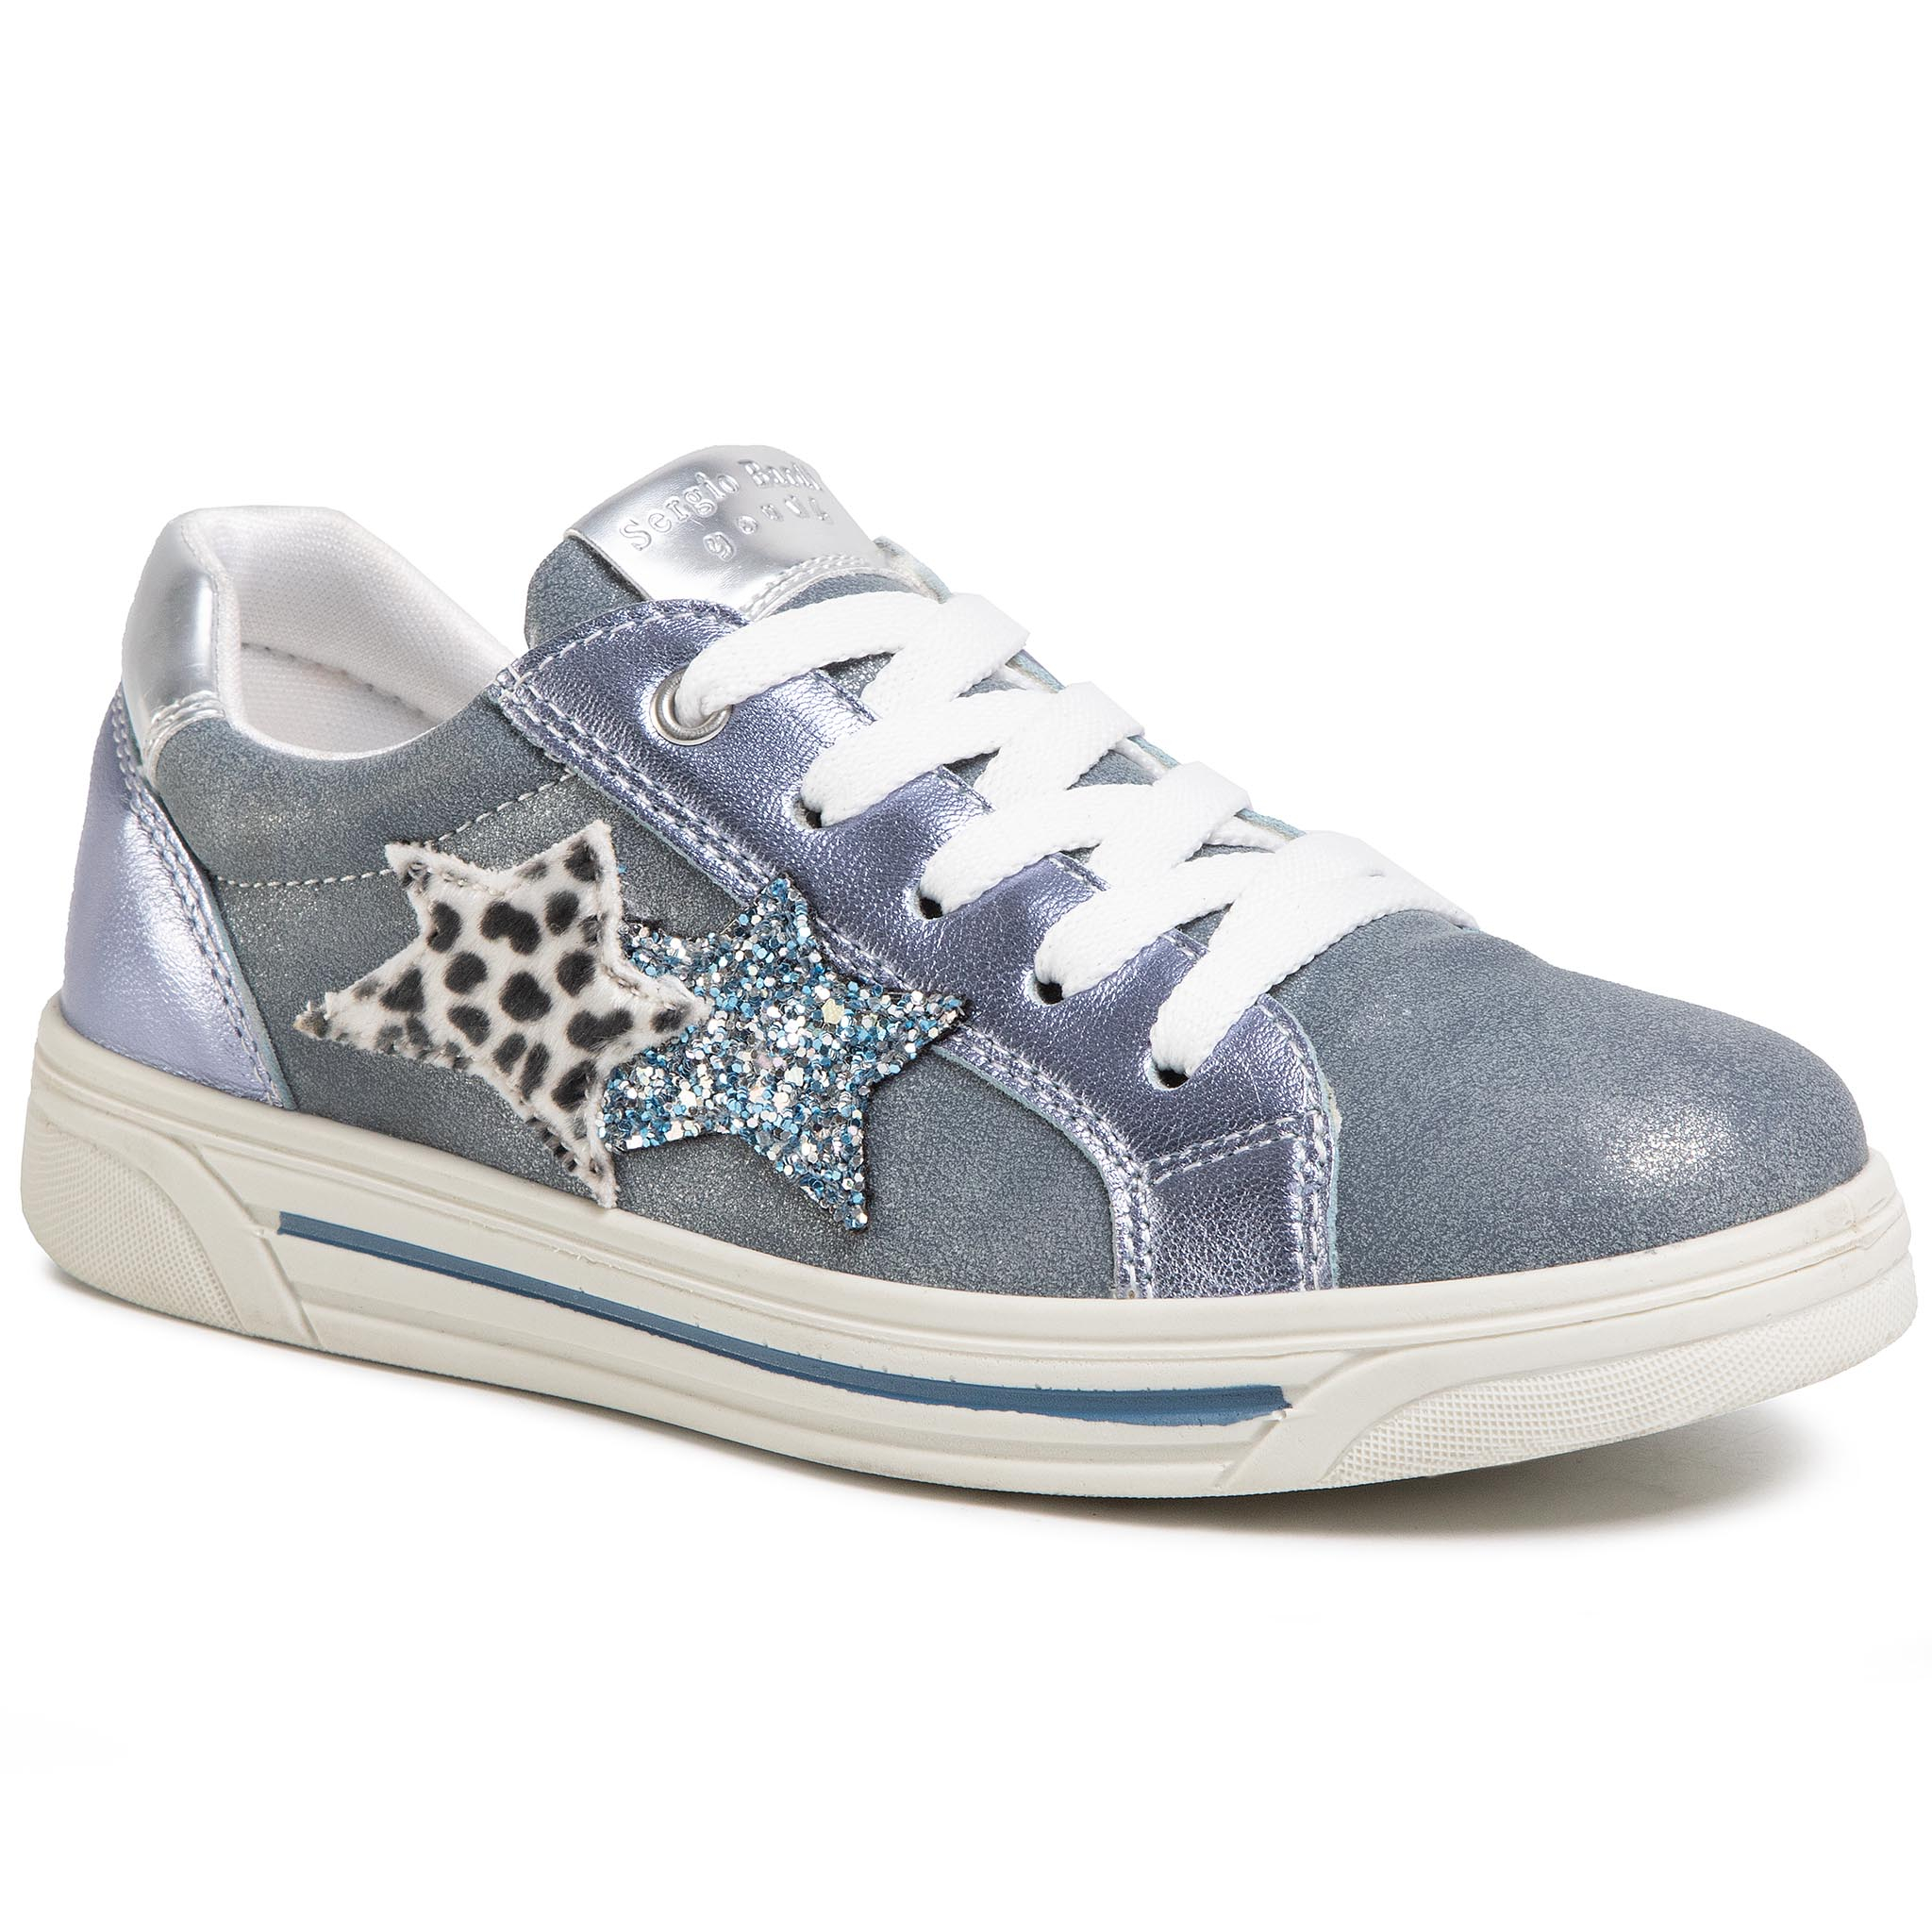 Sneakers SERGIO BARDI YOUNG - SBY-02-03-000039 613